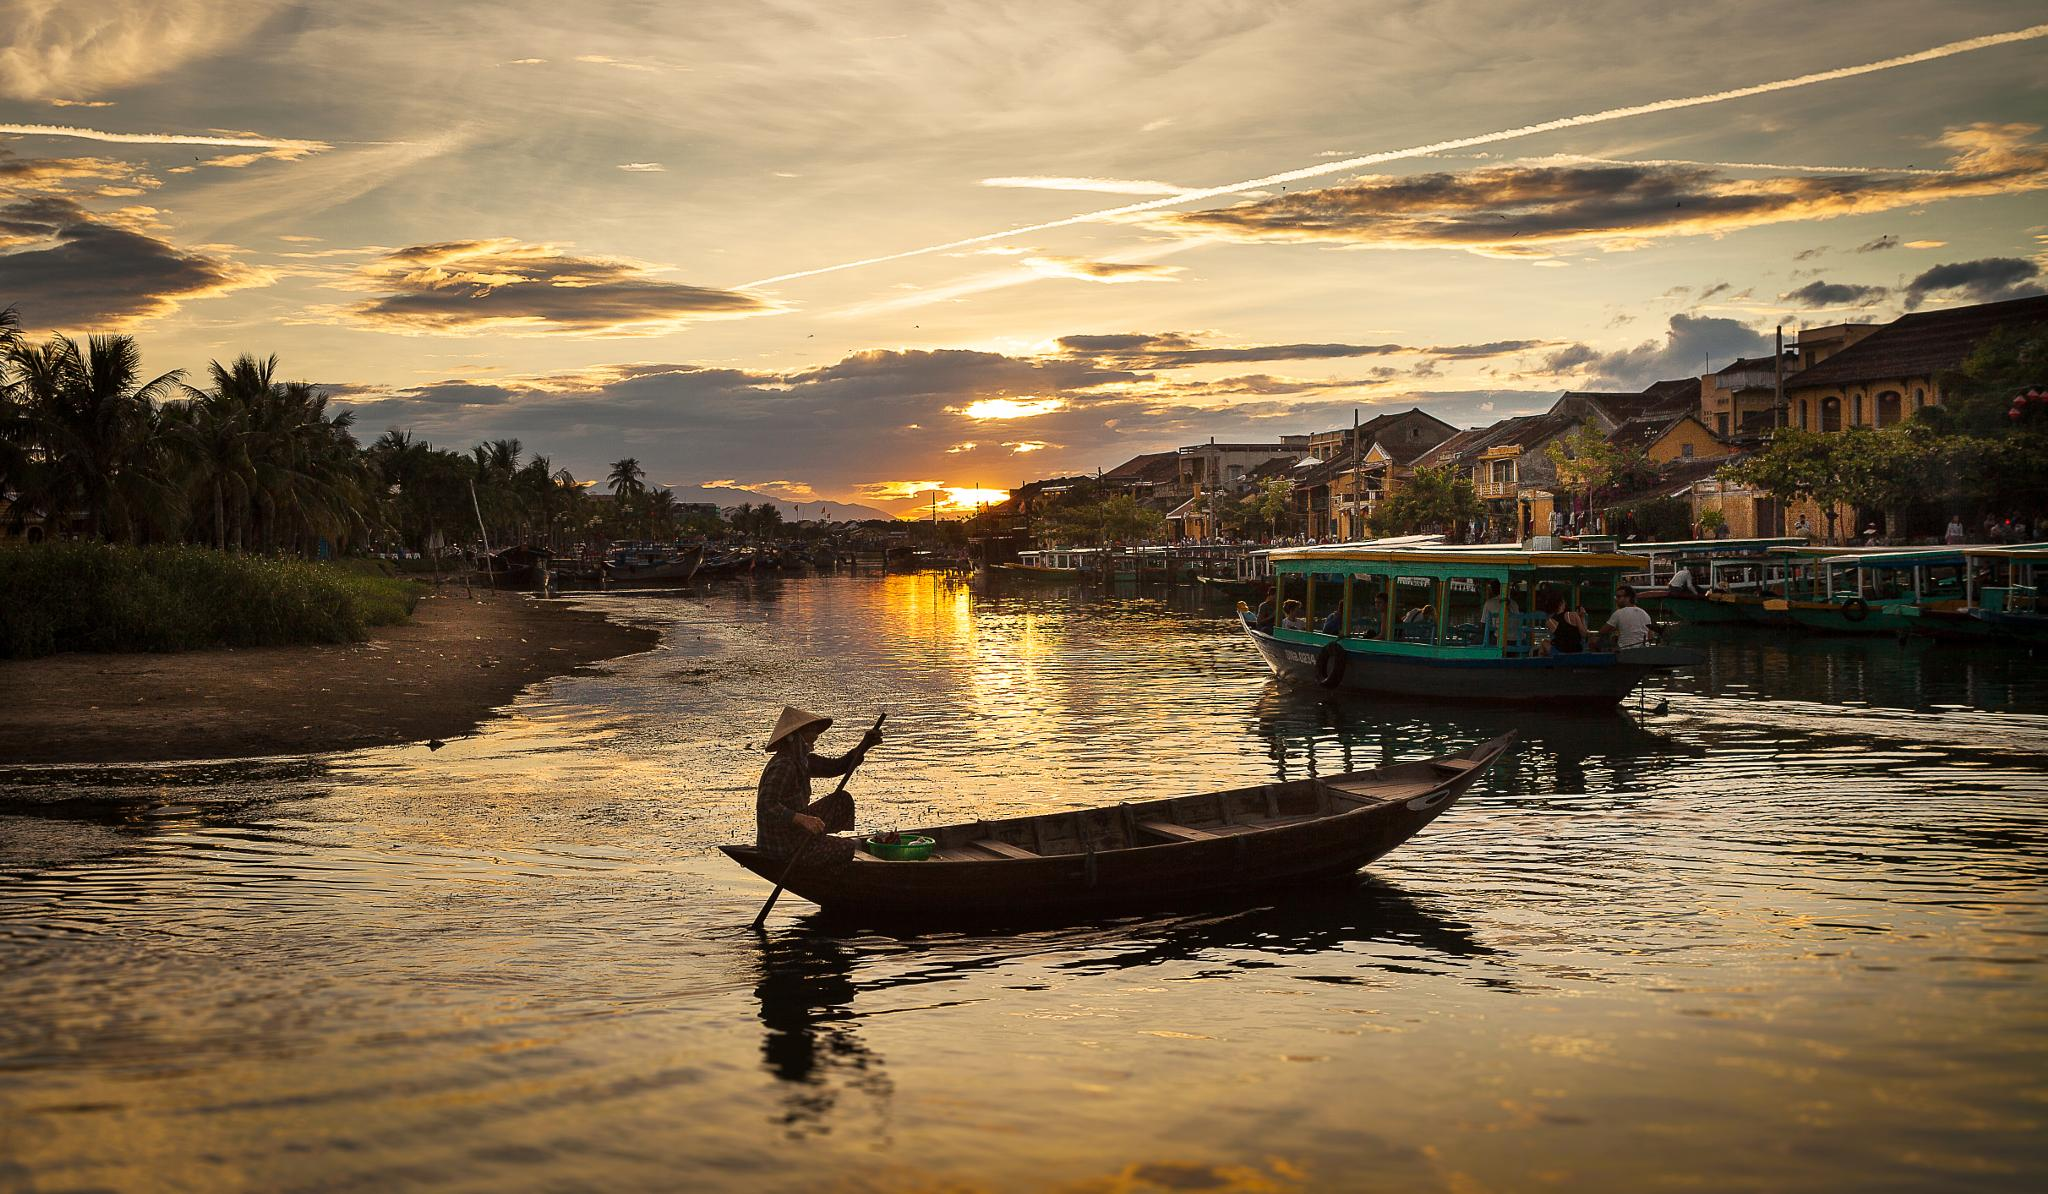 Hoi An by Sylvain Marcelle